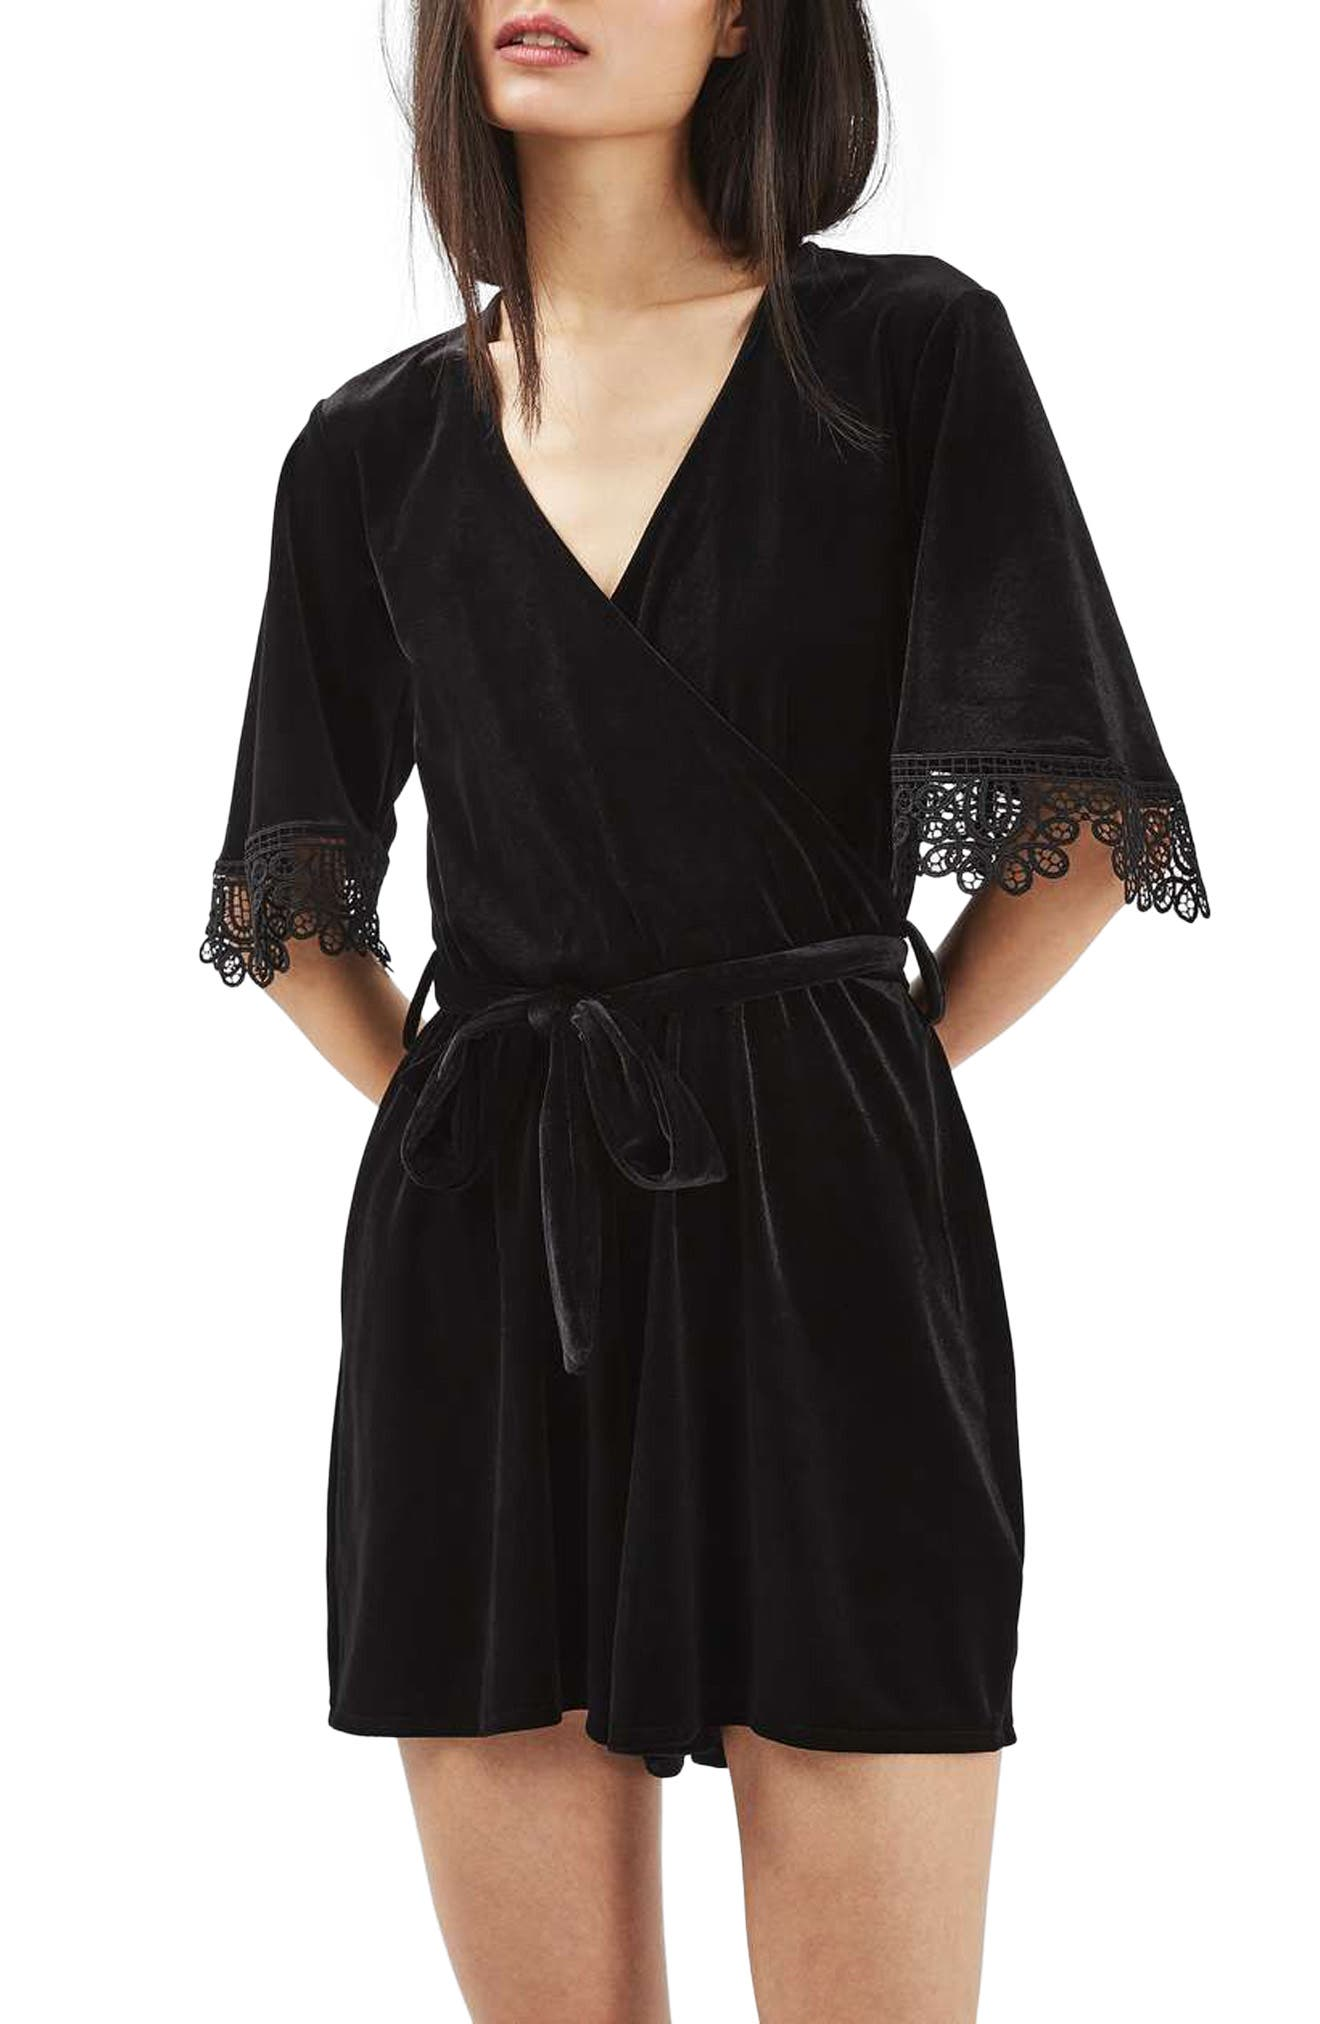 Alternate Image 1 Selected - Topshop Lace Trim Velvet Romper